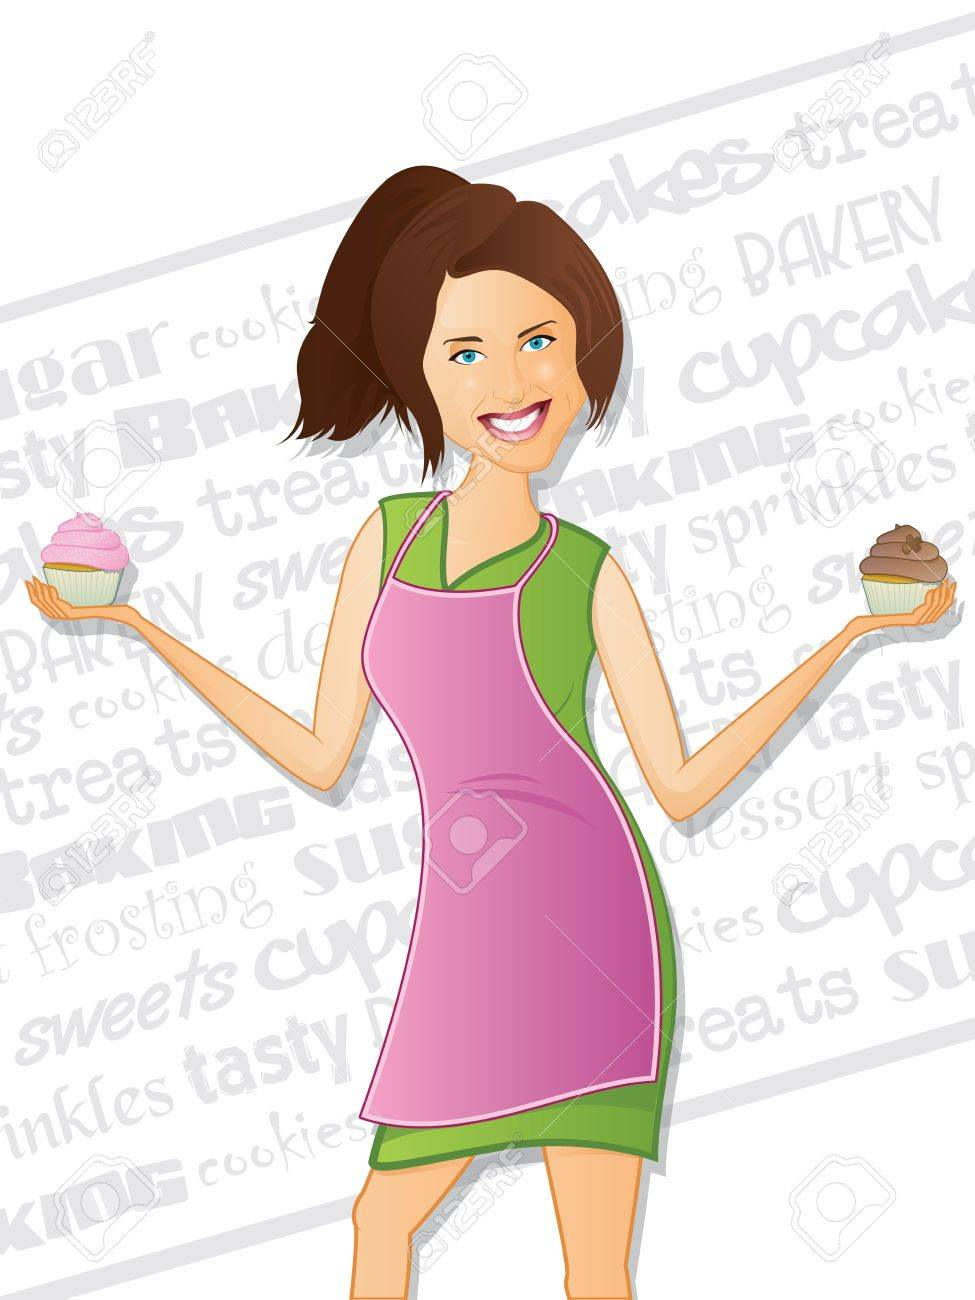 Cupcake Girl with Background Text Stock Vector - 14894263